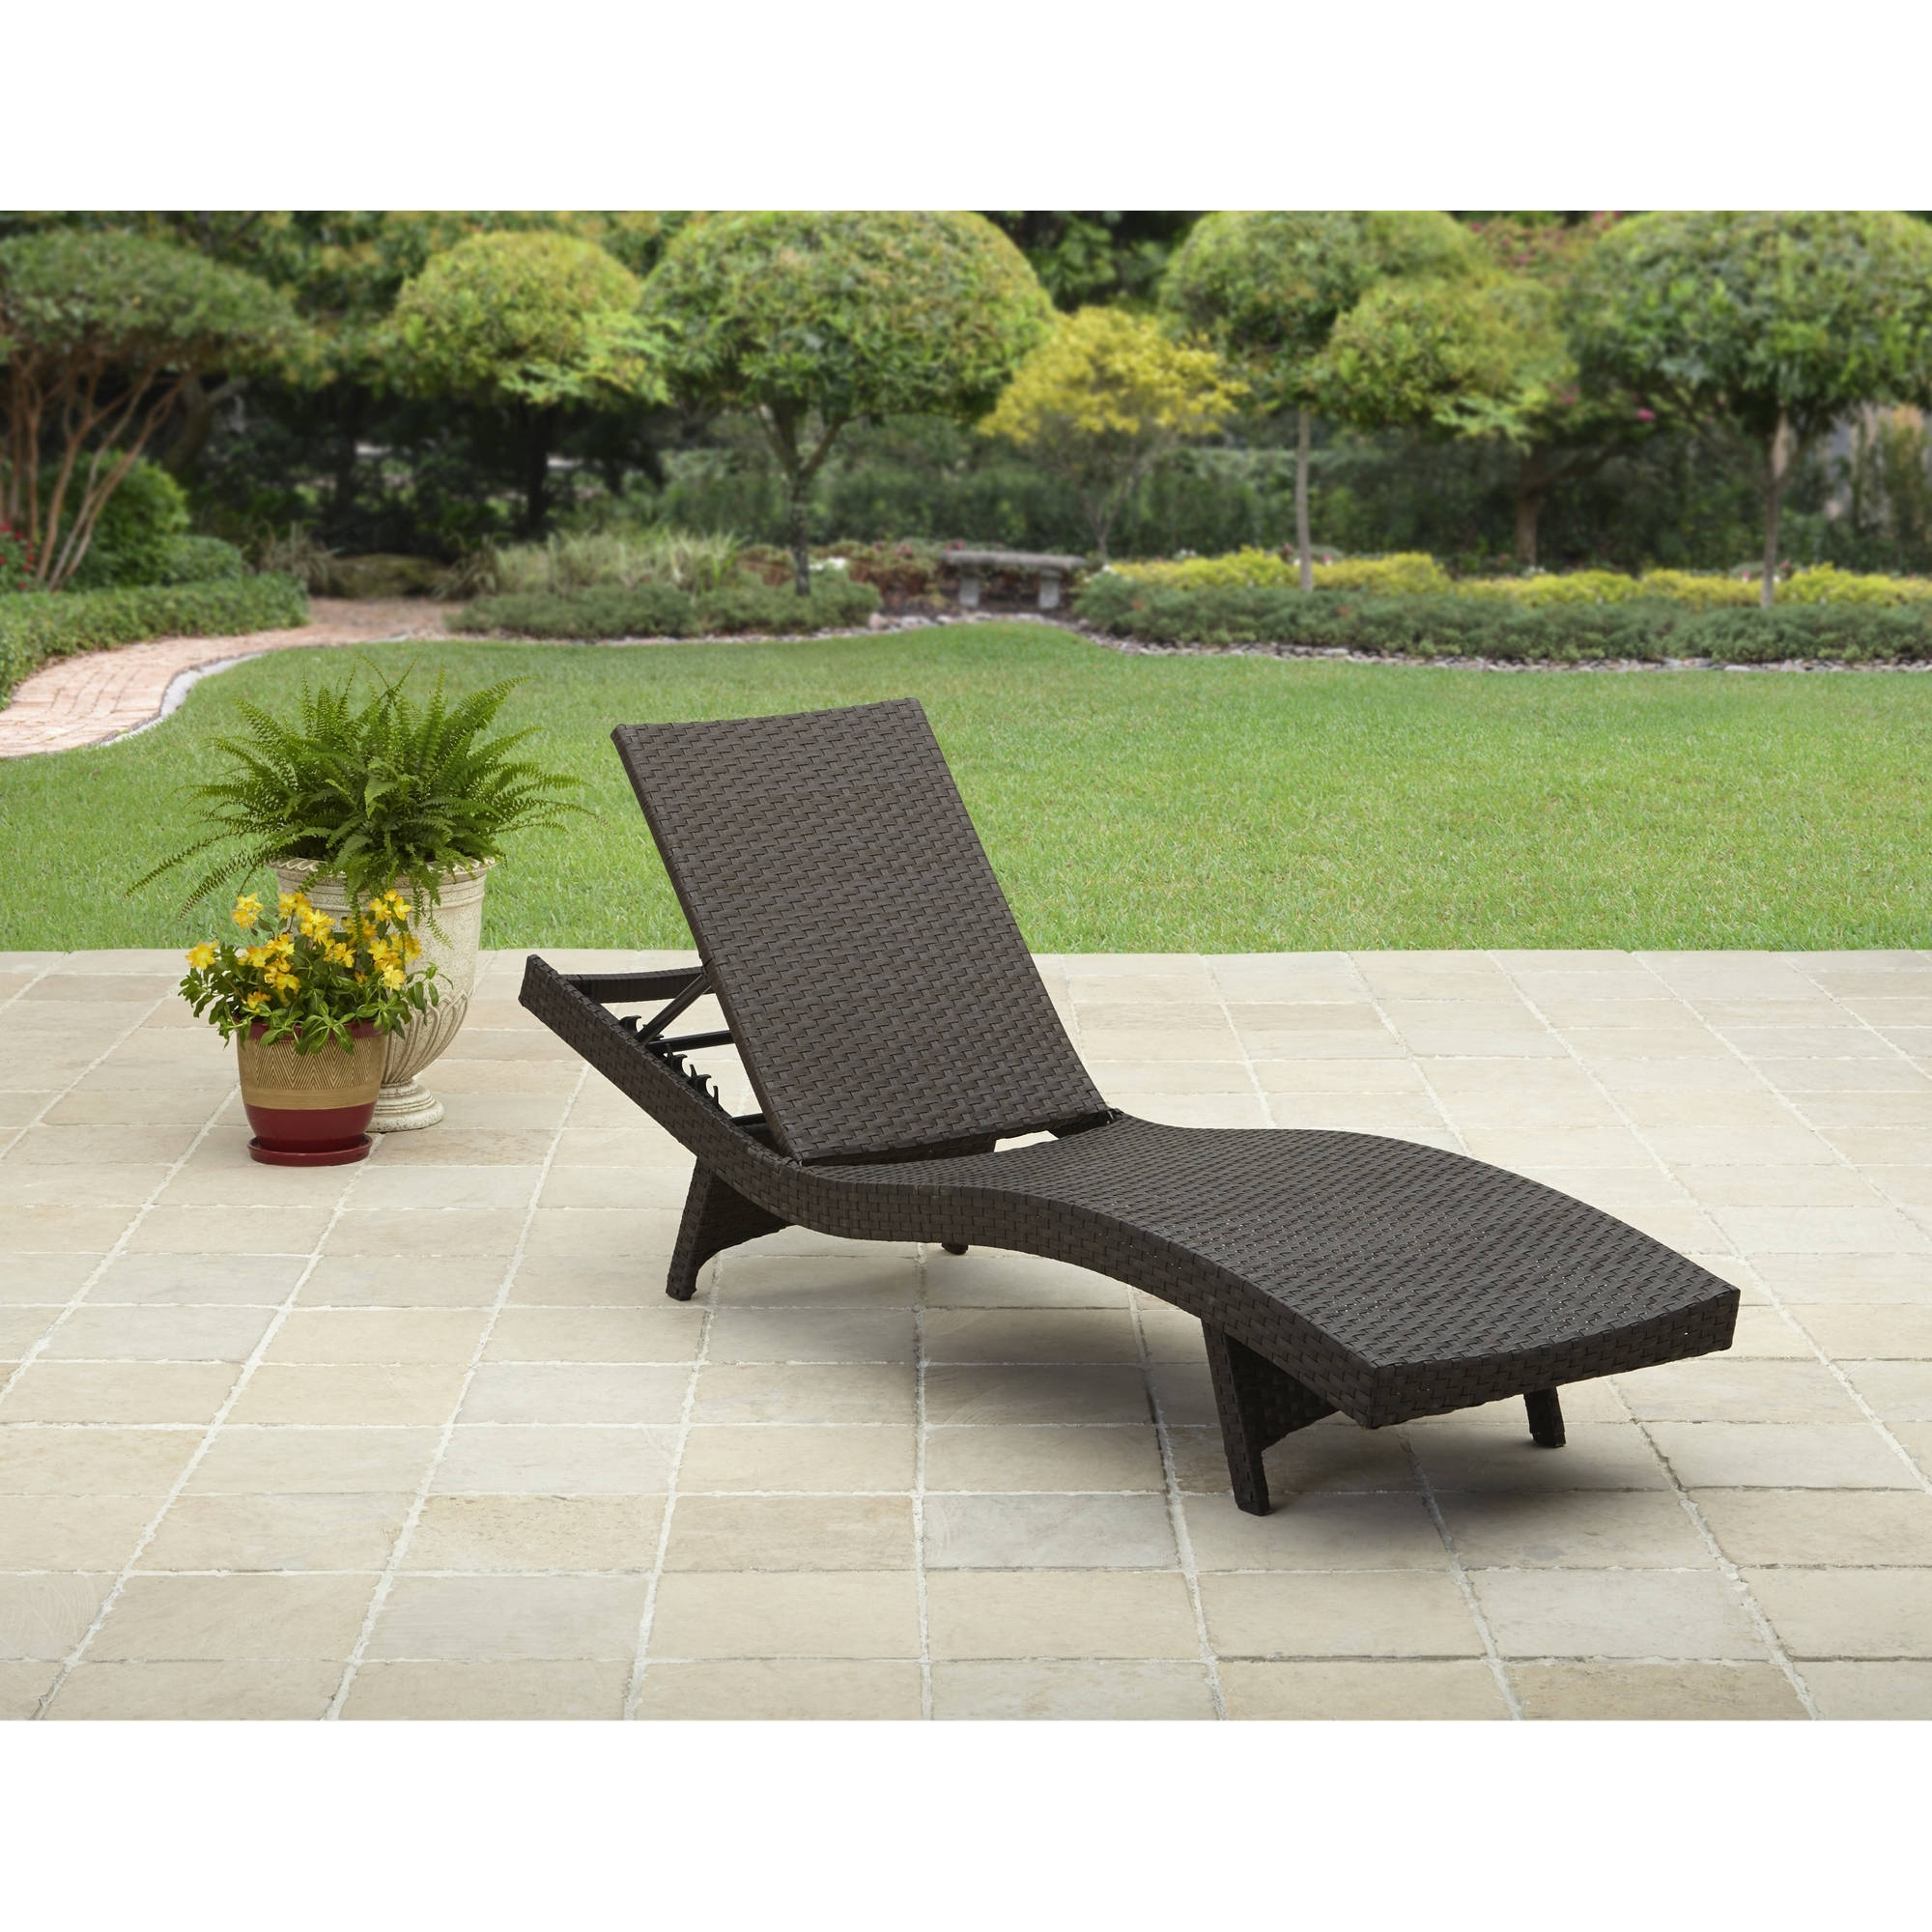 Current Better Homes And Gardens Avila Beach Chaise – Walmart With Regard To Walmart Chaises (View 3 of 15)